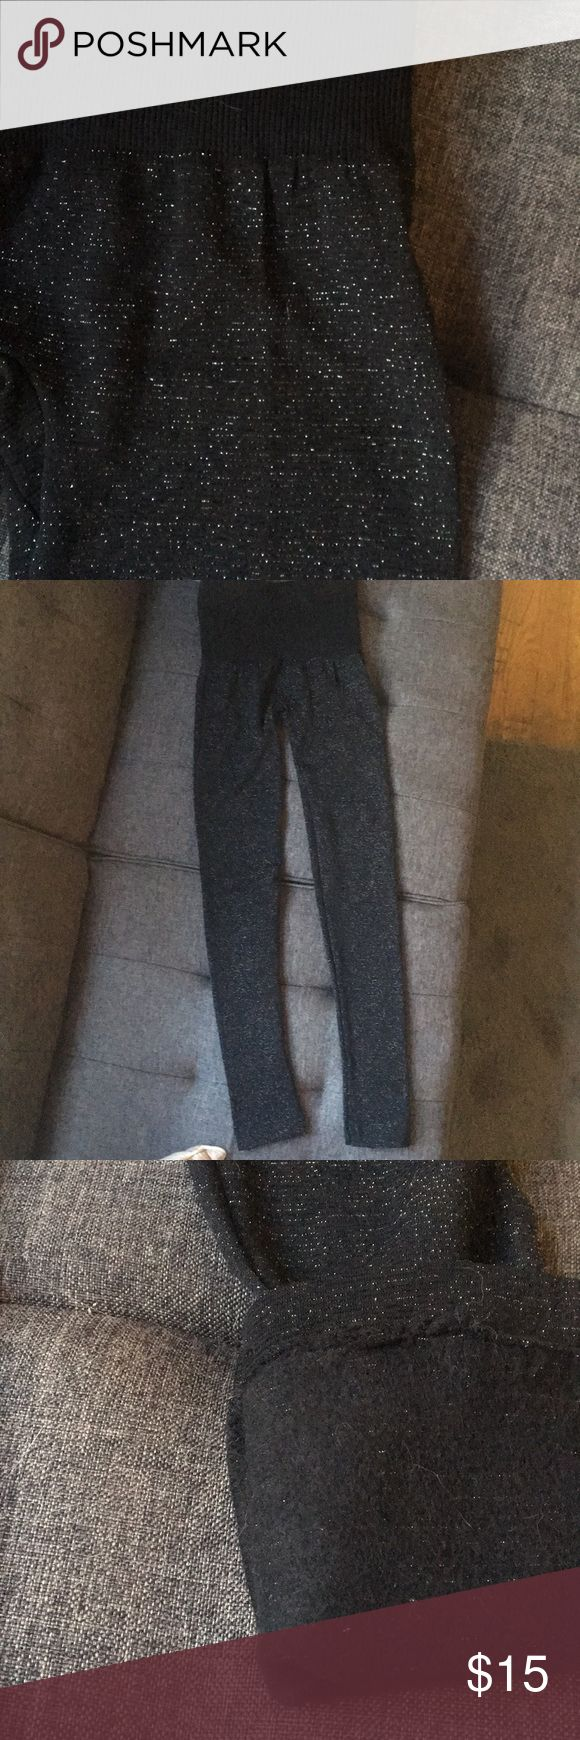 Fleece lined sparkly legging NWOT Fleece lined black leggings with some sparkle! Size small, but fits more similar to an XS. New without tags! Never worn, only tried on once and were too small. Perfect condition! Feel free to make an offer! Smoke free home Francesca's Collections Pants Leggings